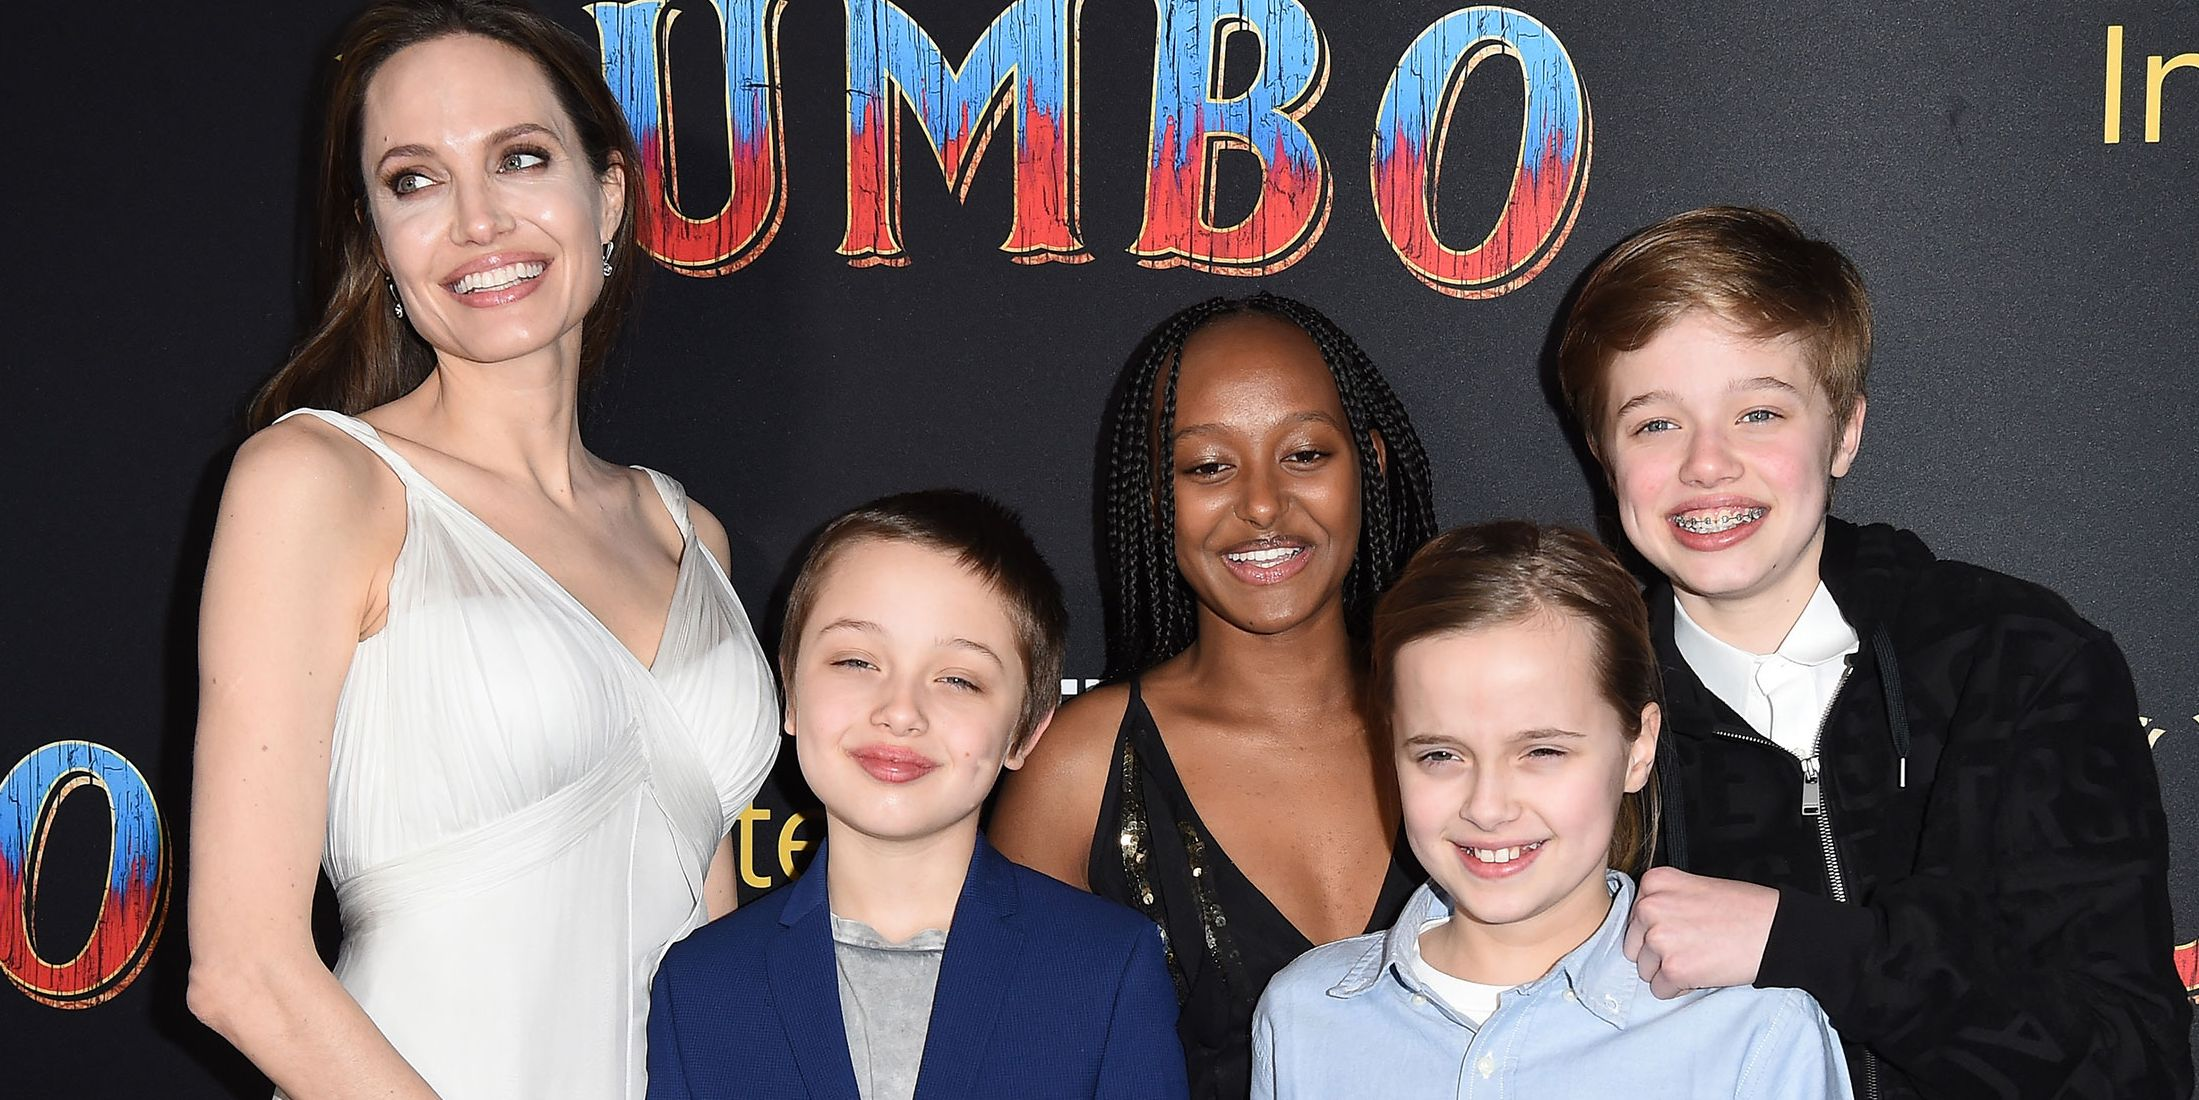 Angelina Jolie attends Dumbo premiere with her kids